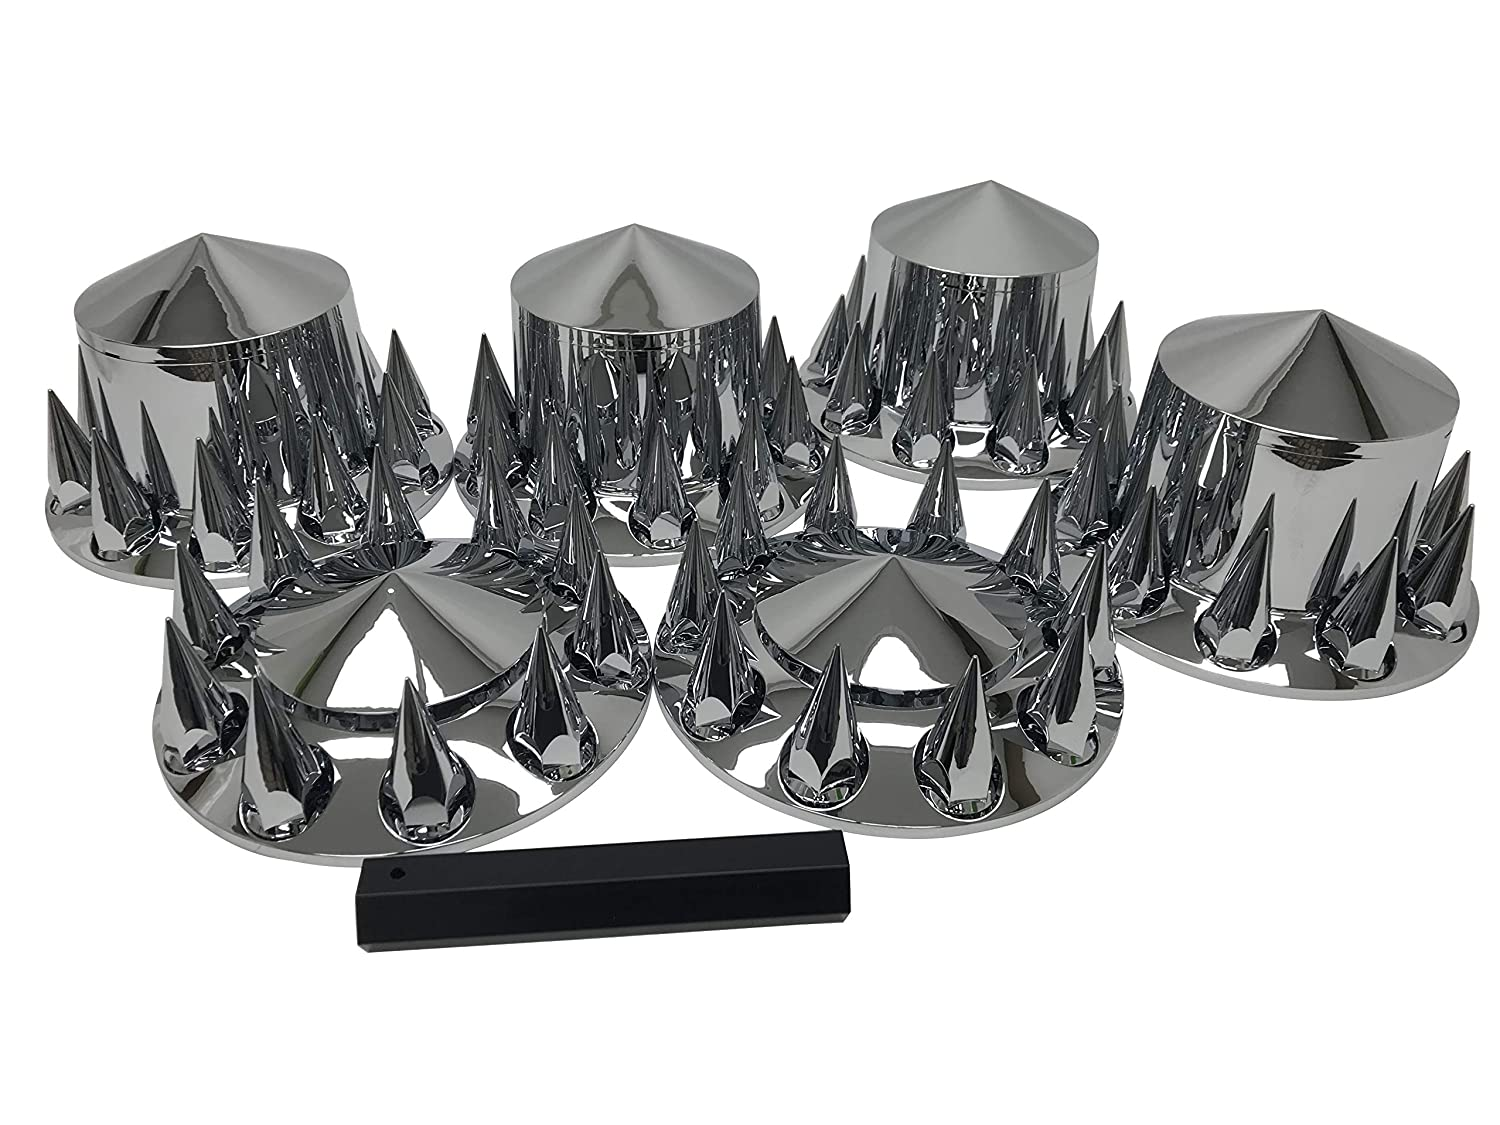 Wheel Cover Kit Chrome Front & Rear Complete 33mm Spiked Lug Covers Semi Truck Eagle Products